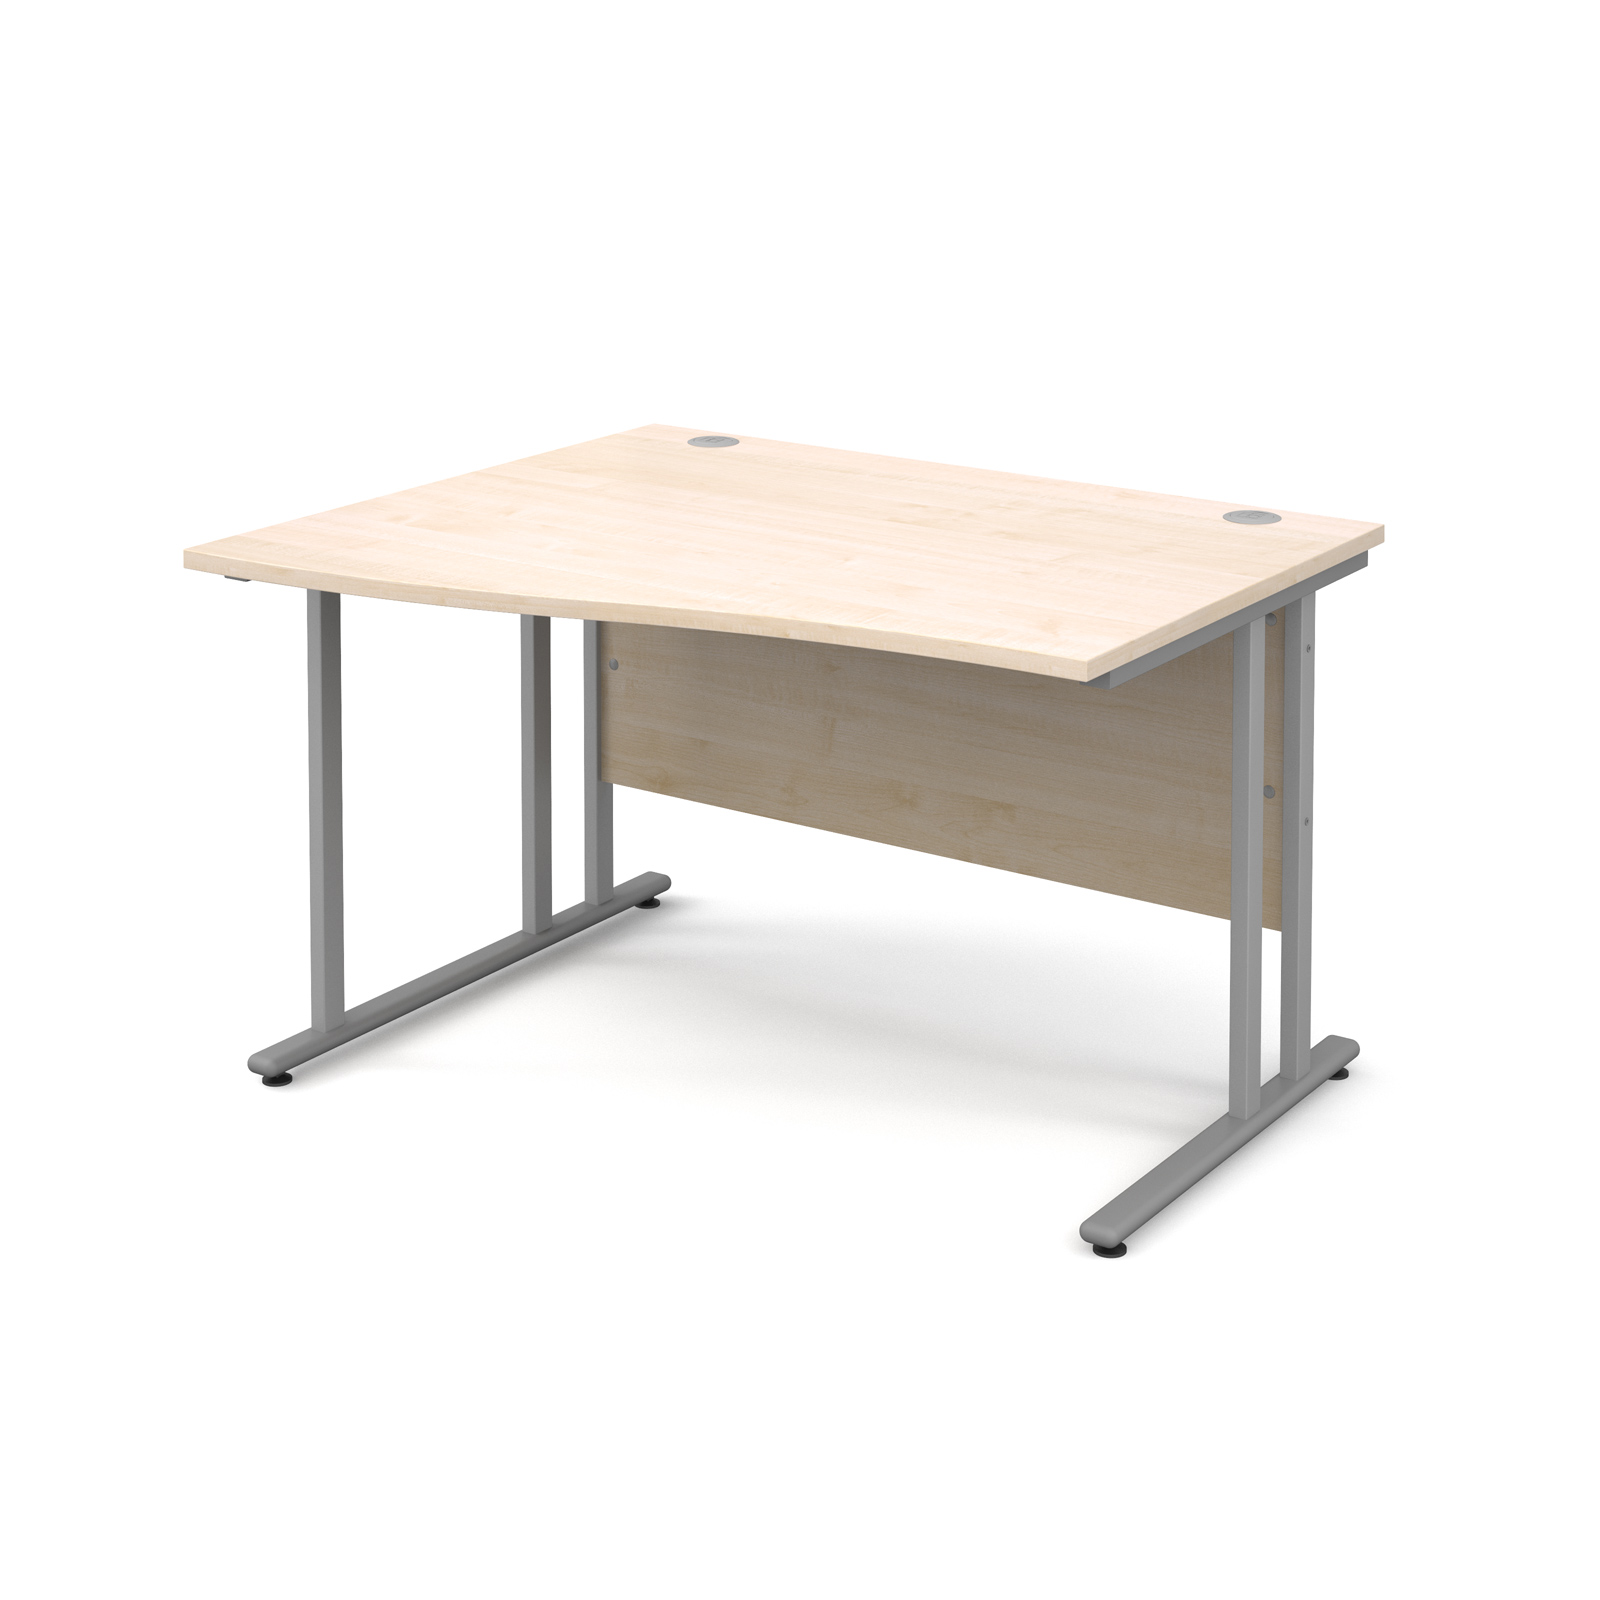 Dams Maestro 25 SL Maple Desk | Wave